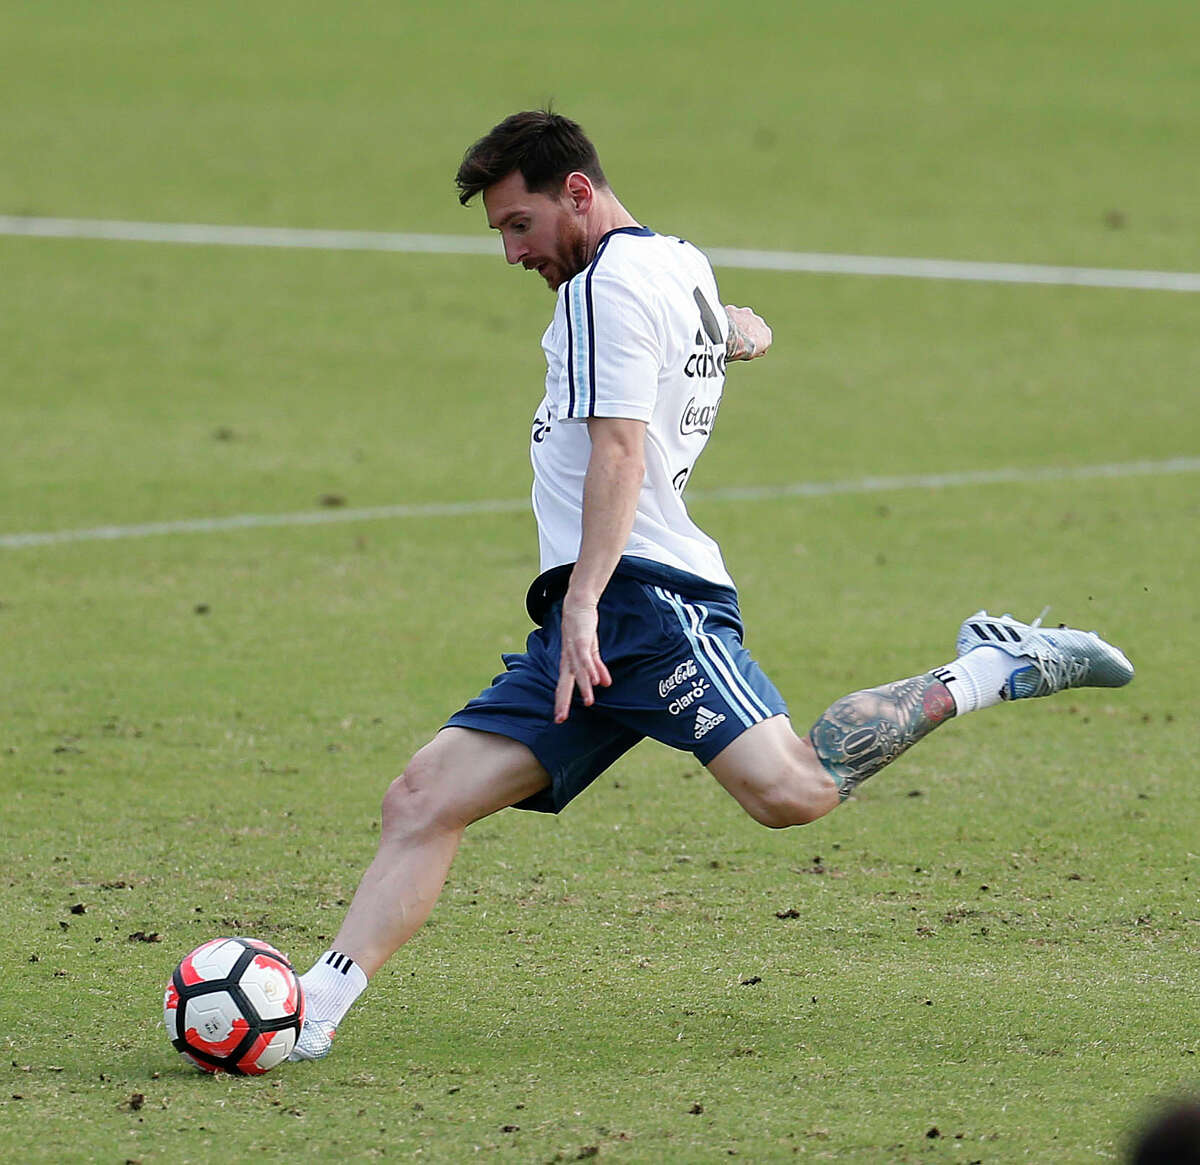 PLAYERS TO WATCH Argentina Lionel Messi FC Barcelona's $41 million man is on the short list of the world's greatest players. He has scored 312 goals for the La Liga side since his 2004 debut.